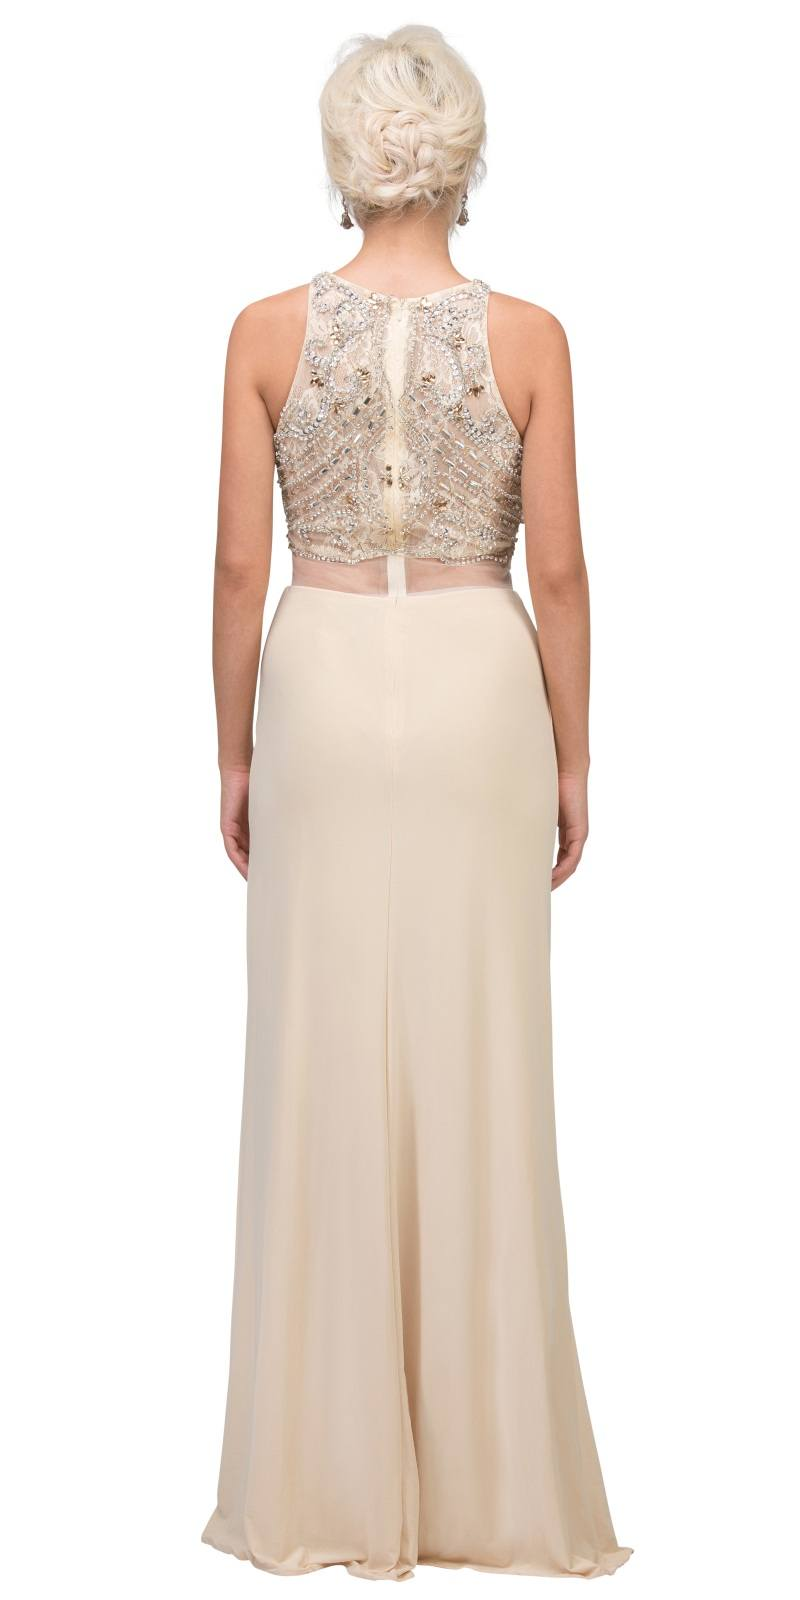 Starbox USA 6181 Champagne Beaded Mock Two-Piece Prom Gown with Slit ...